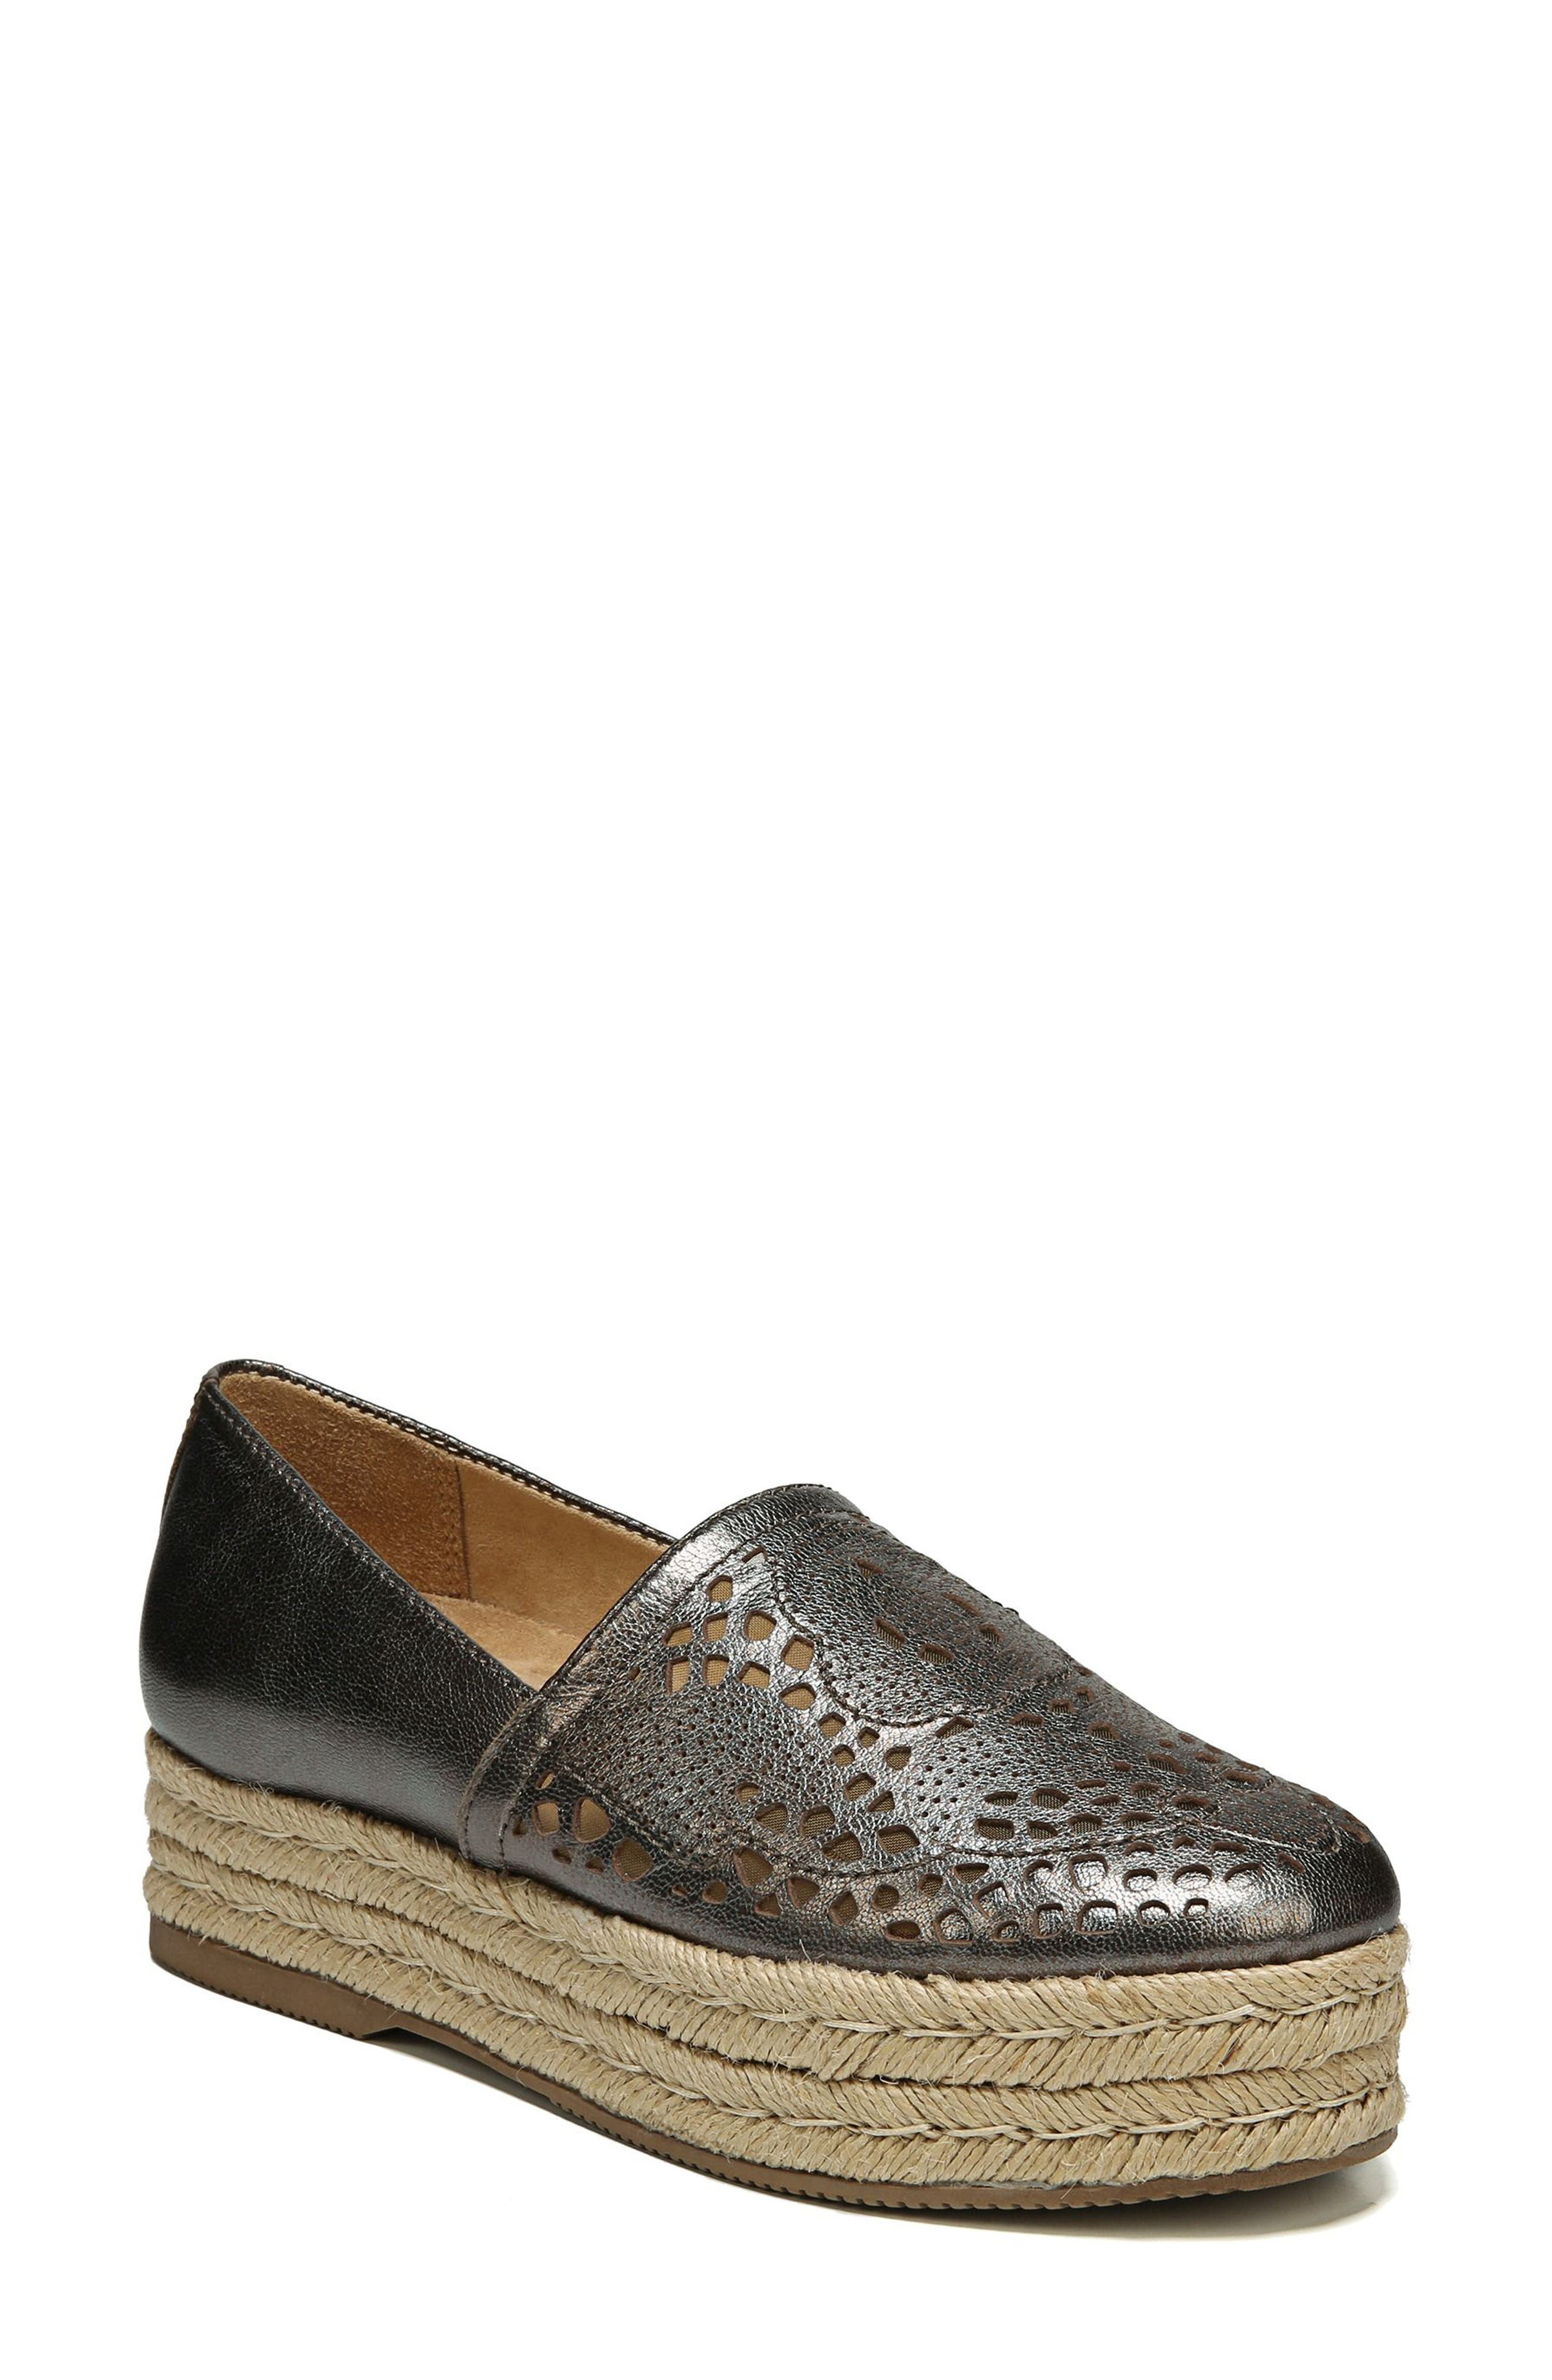 Alternate Image 1 Selected - Naturalizer Thea Perforated Platform Espadrille (Women)